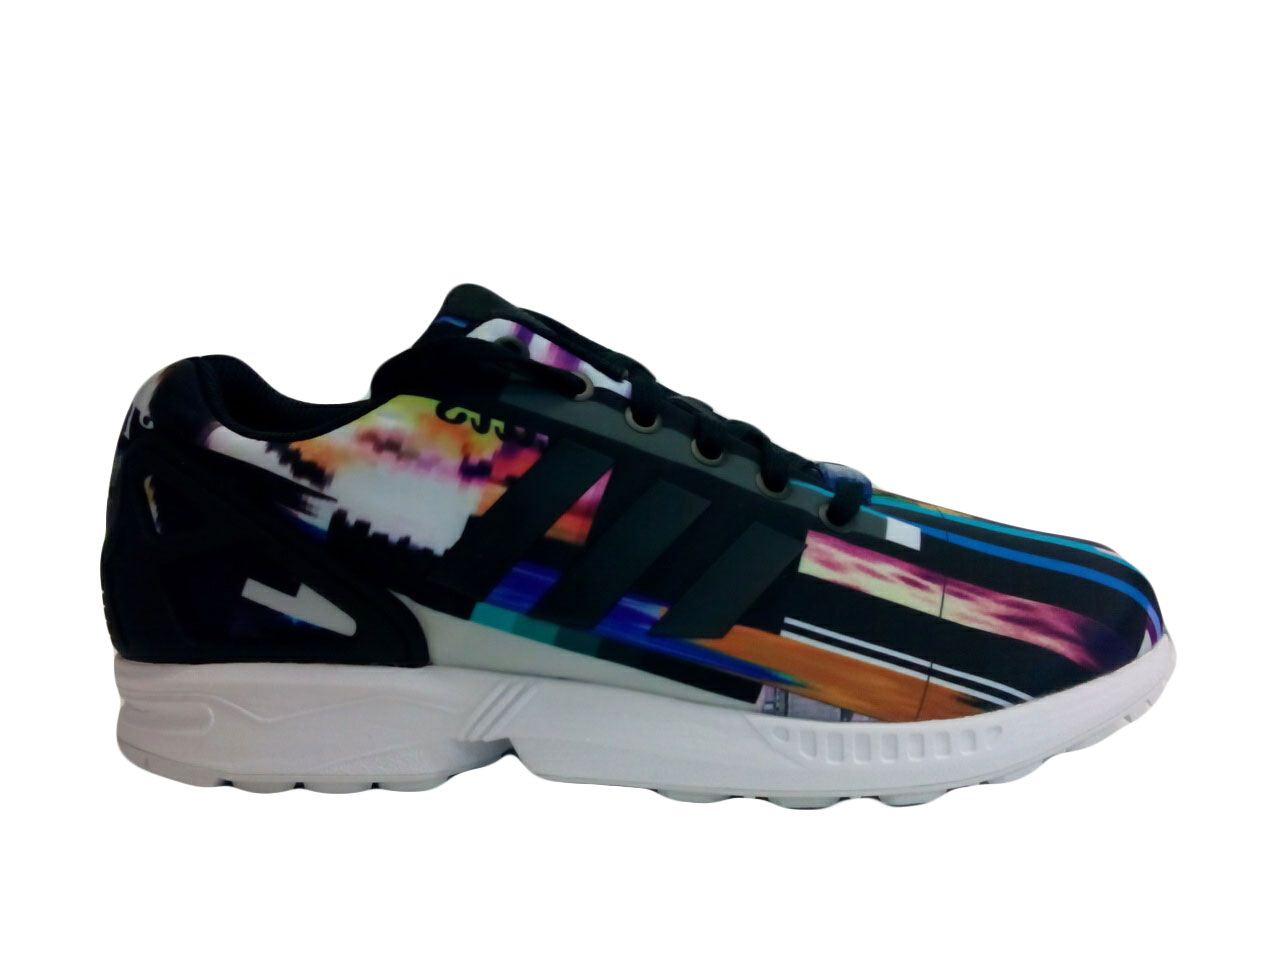 Adidas Men's ZX Flux New Limited Ed Graphics Sneakers M19844 Digital Multi Color | eBay